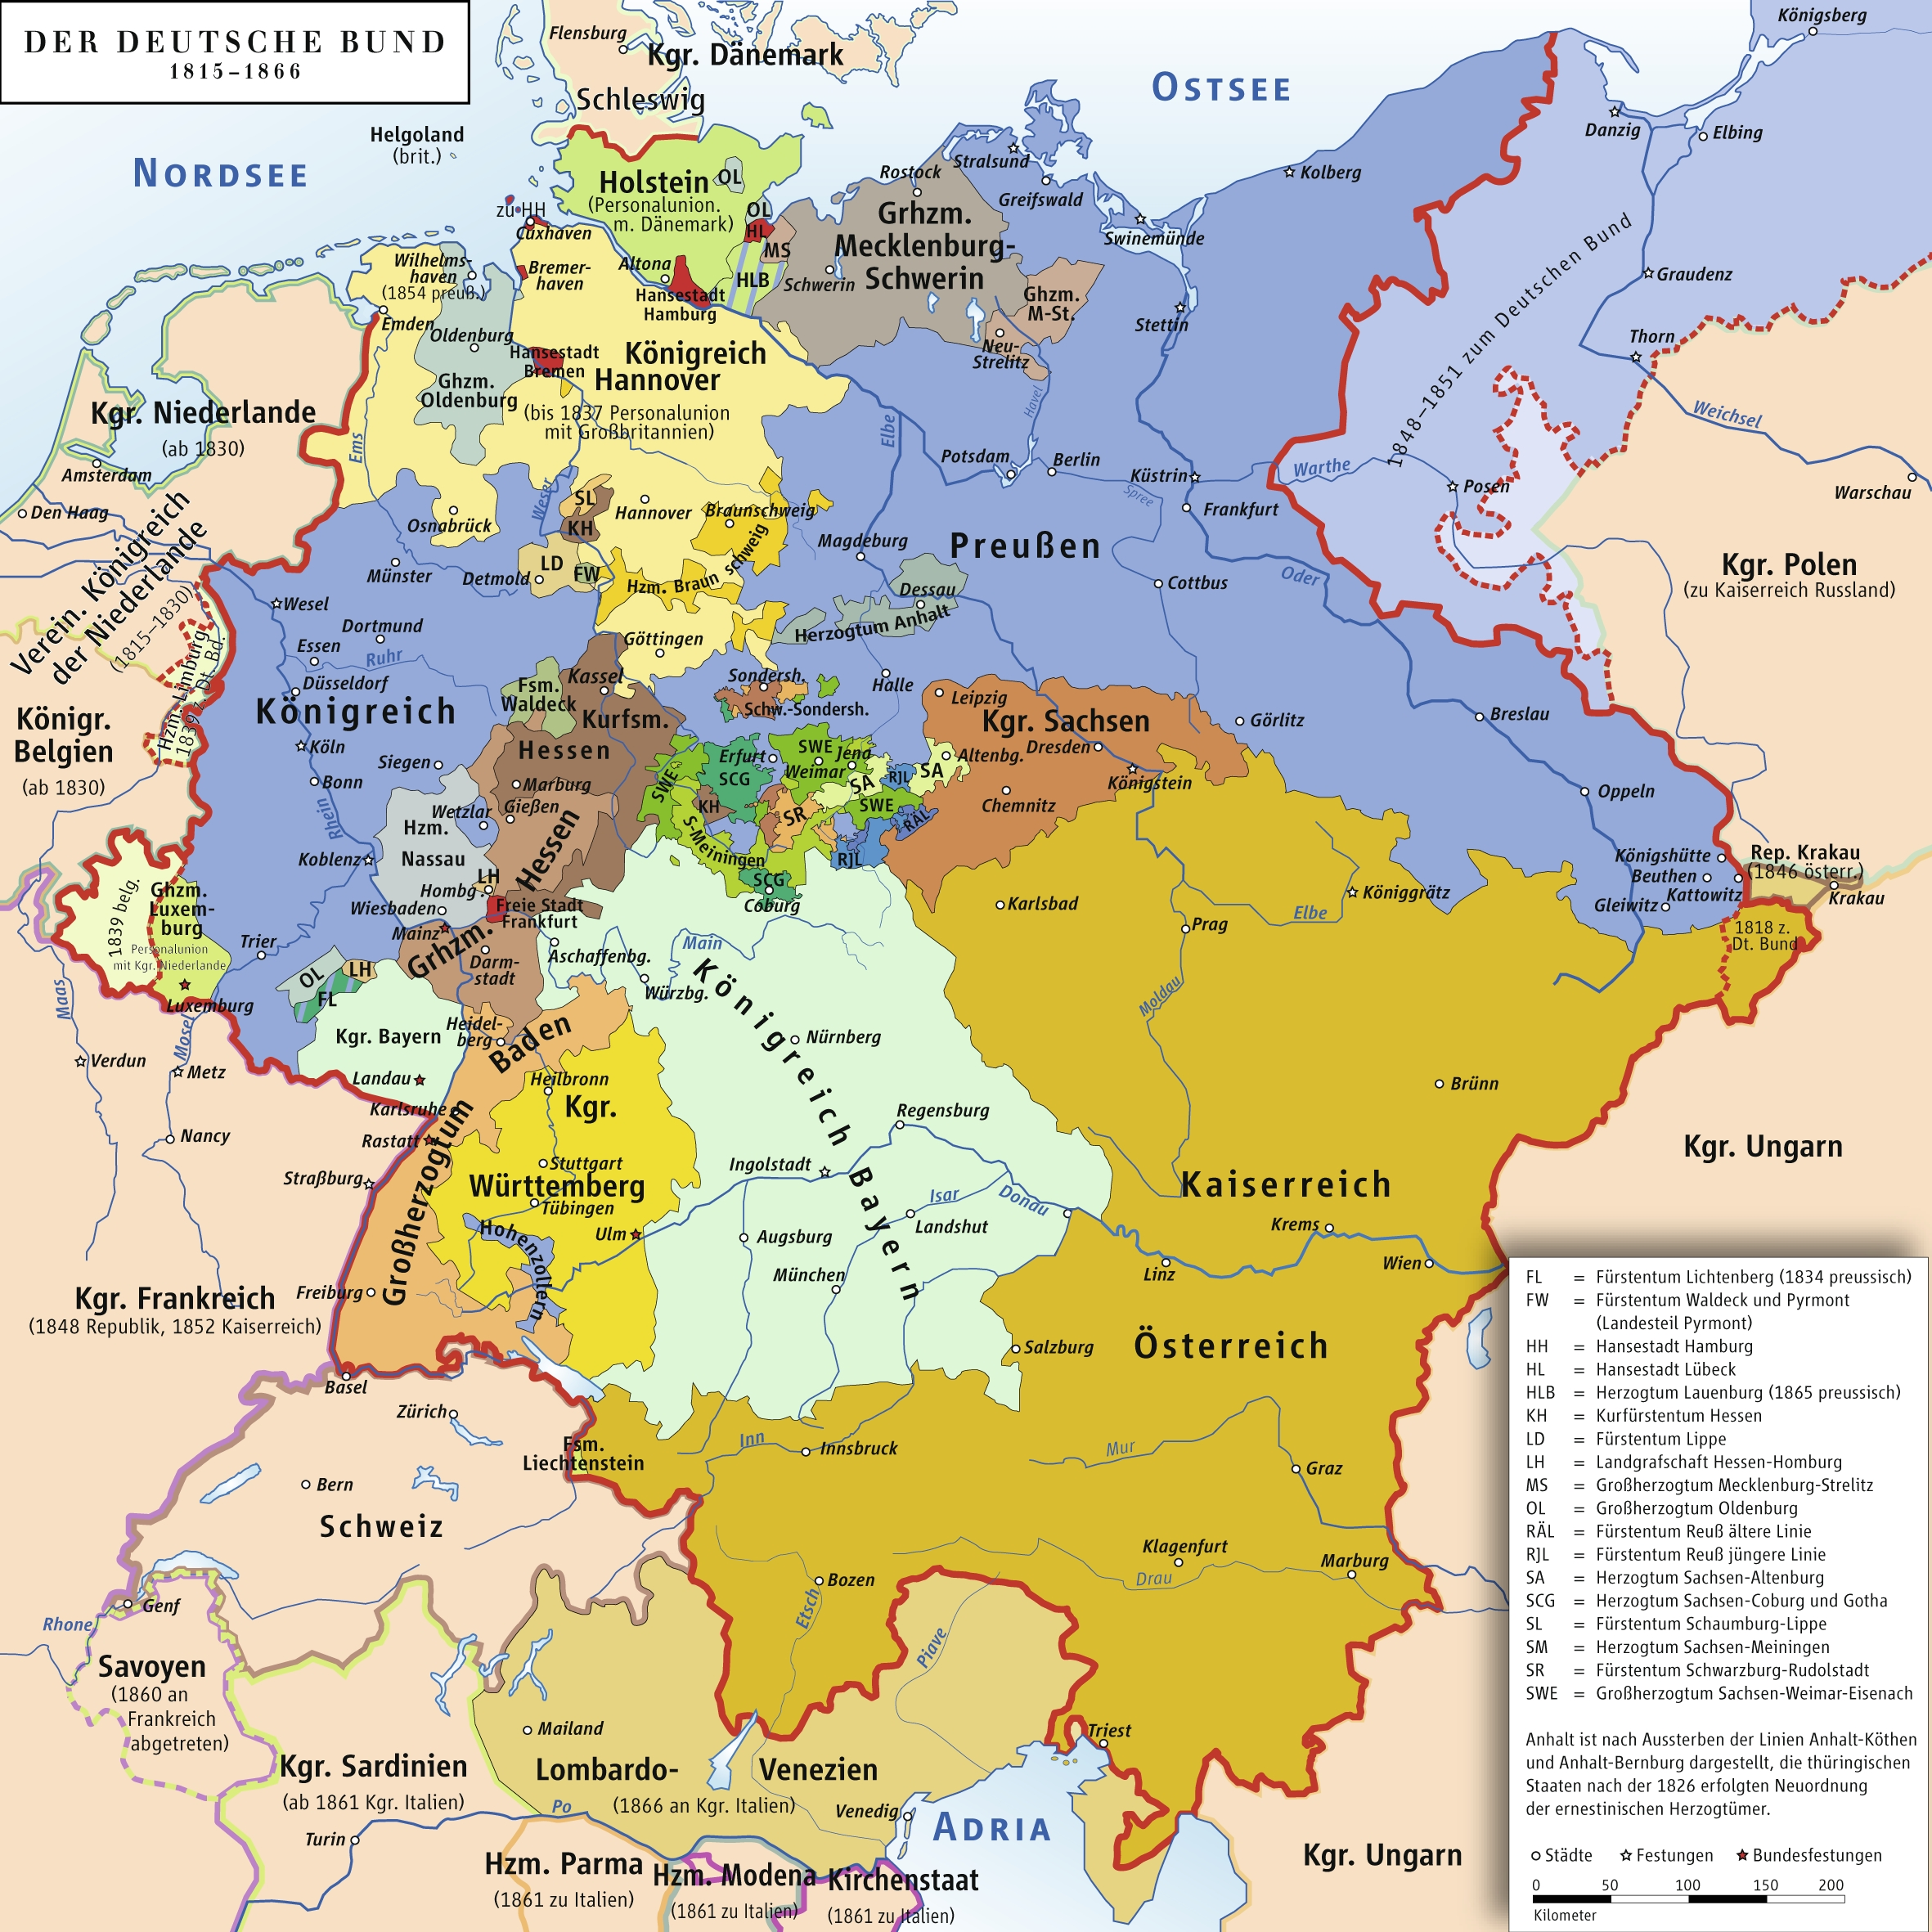 States Of The German Confederation - Wikipedia intended for Maps Of Germany Throughout History